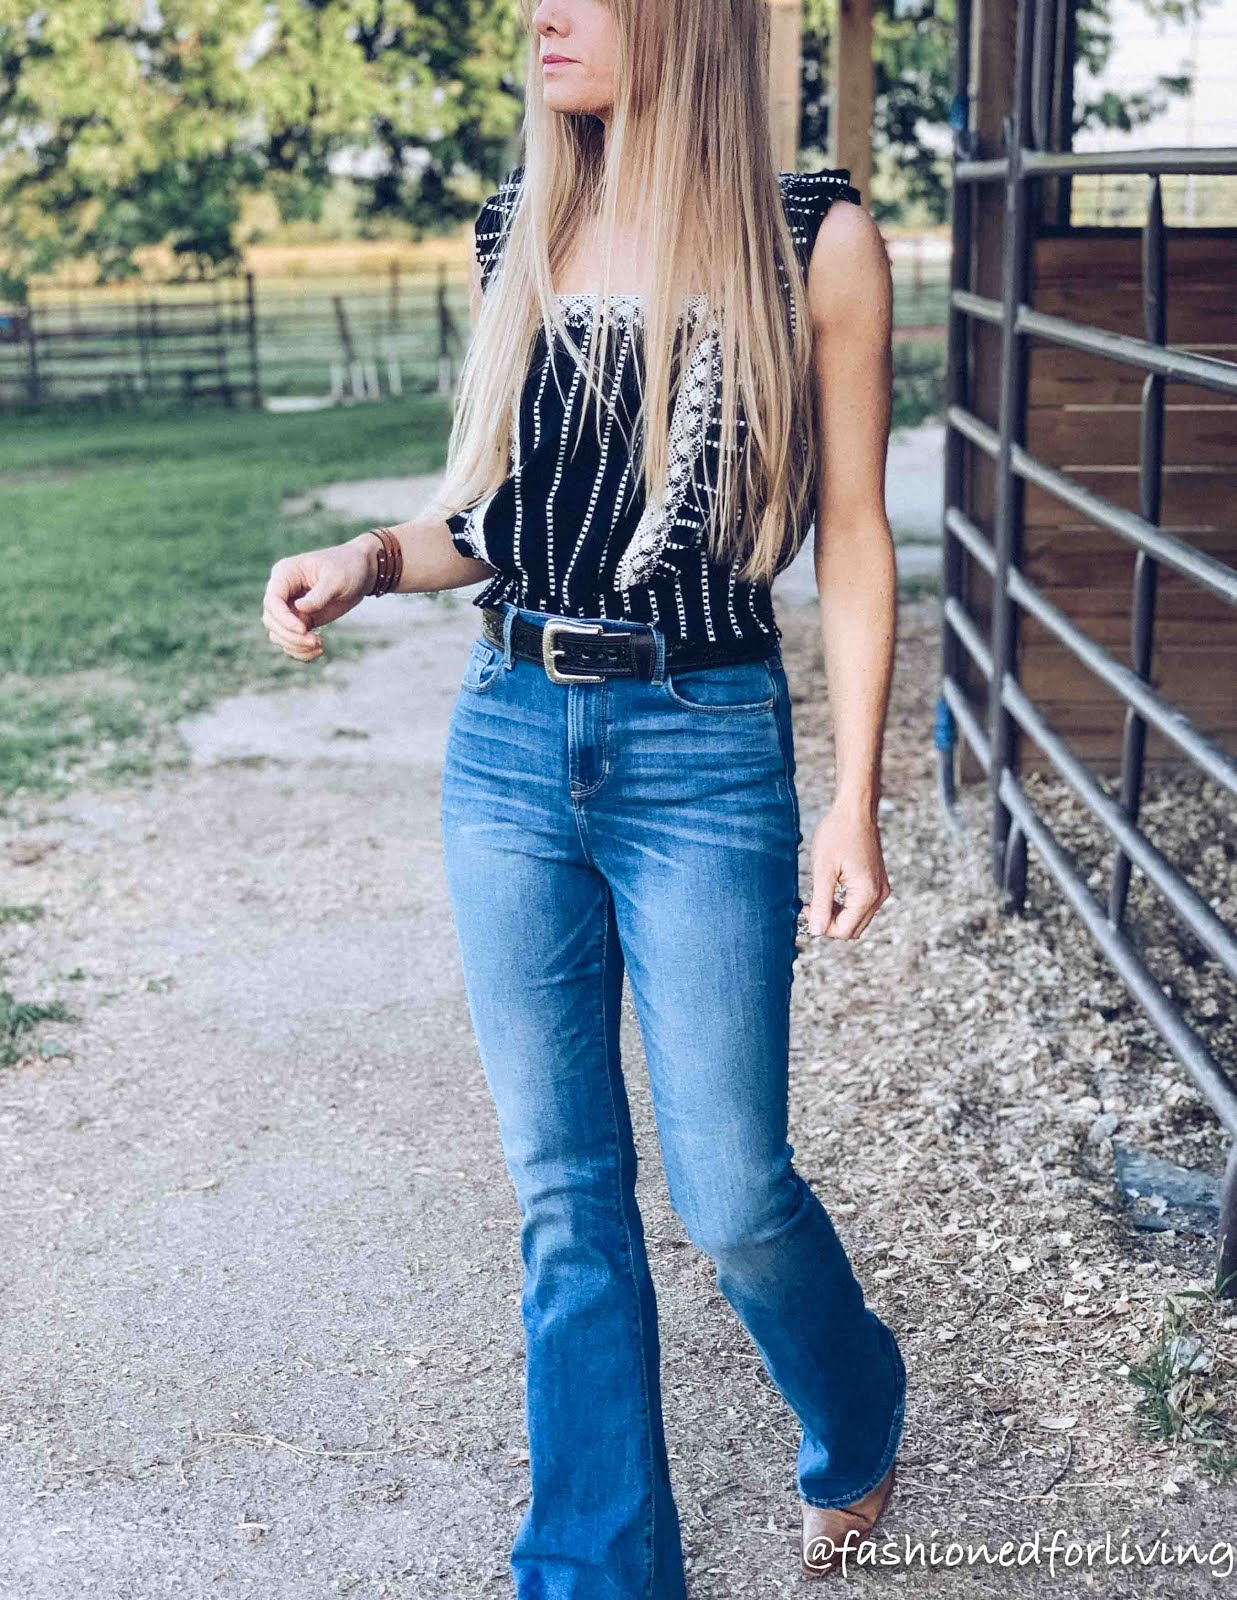 cute summer top with jeans and boots. cowgirl boots